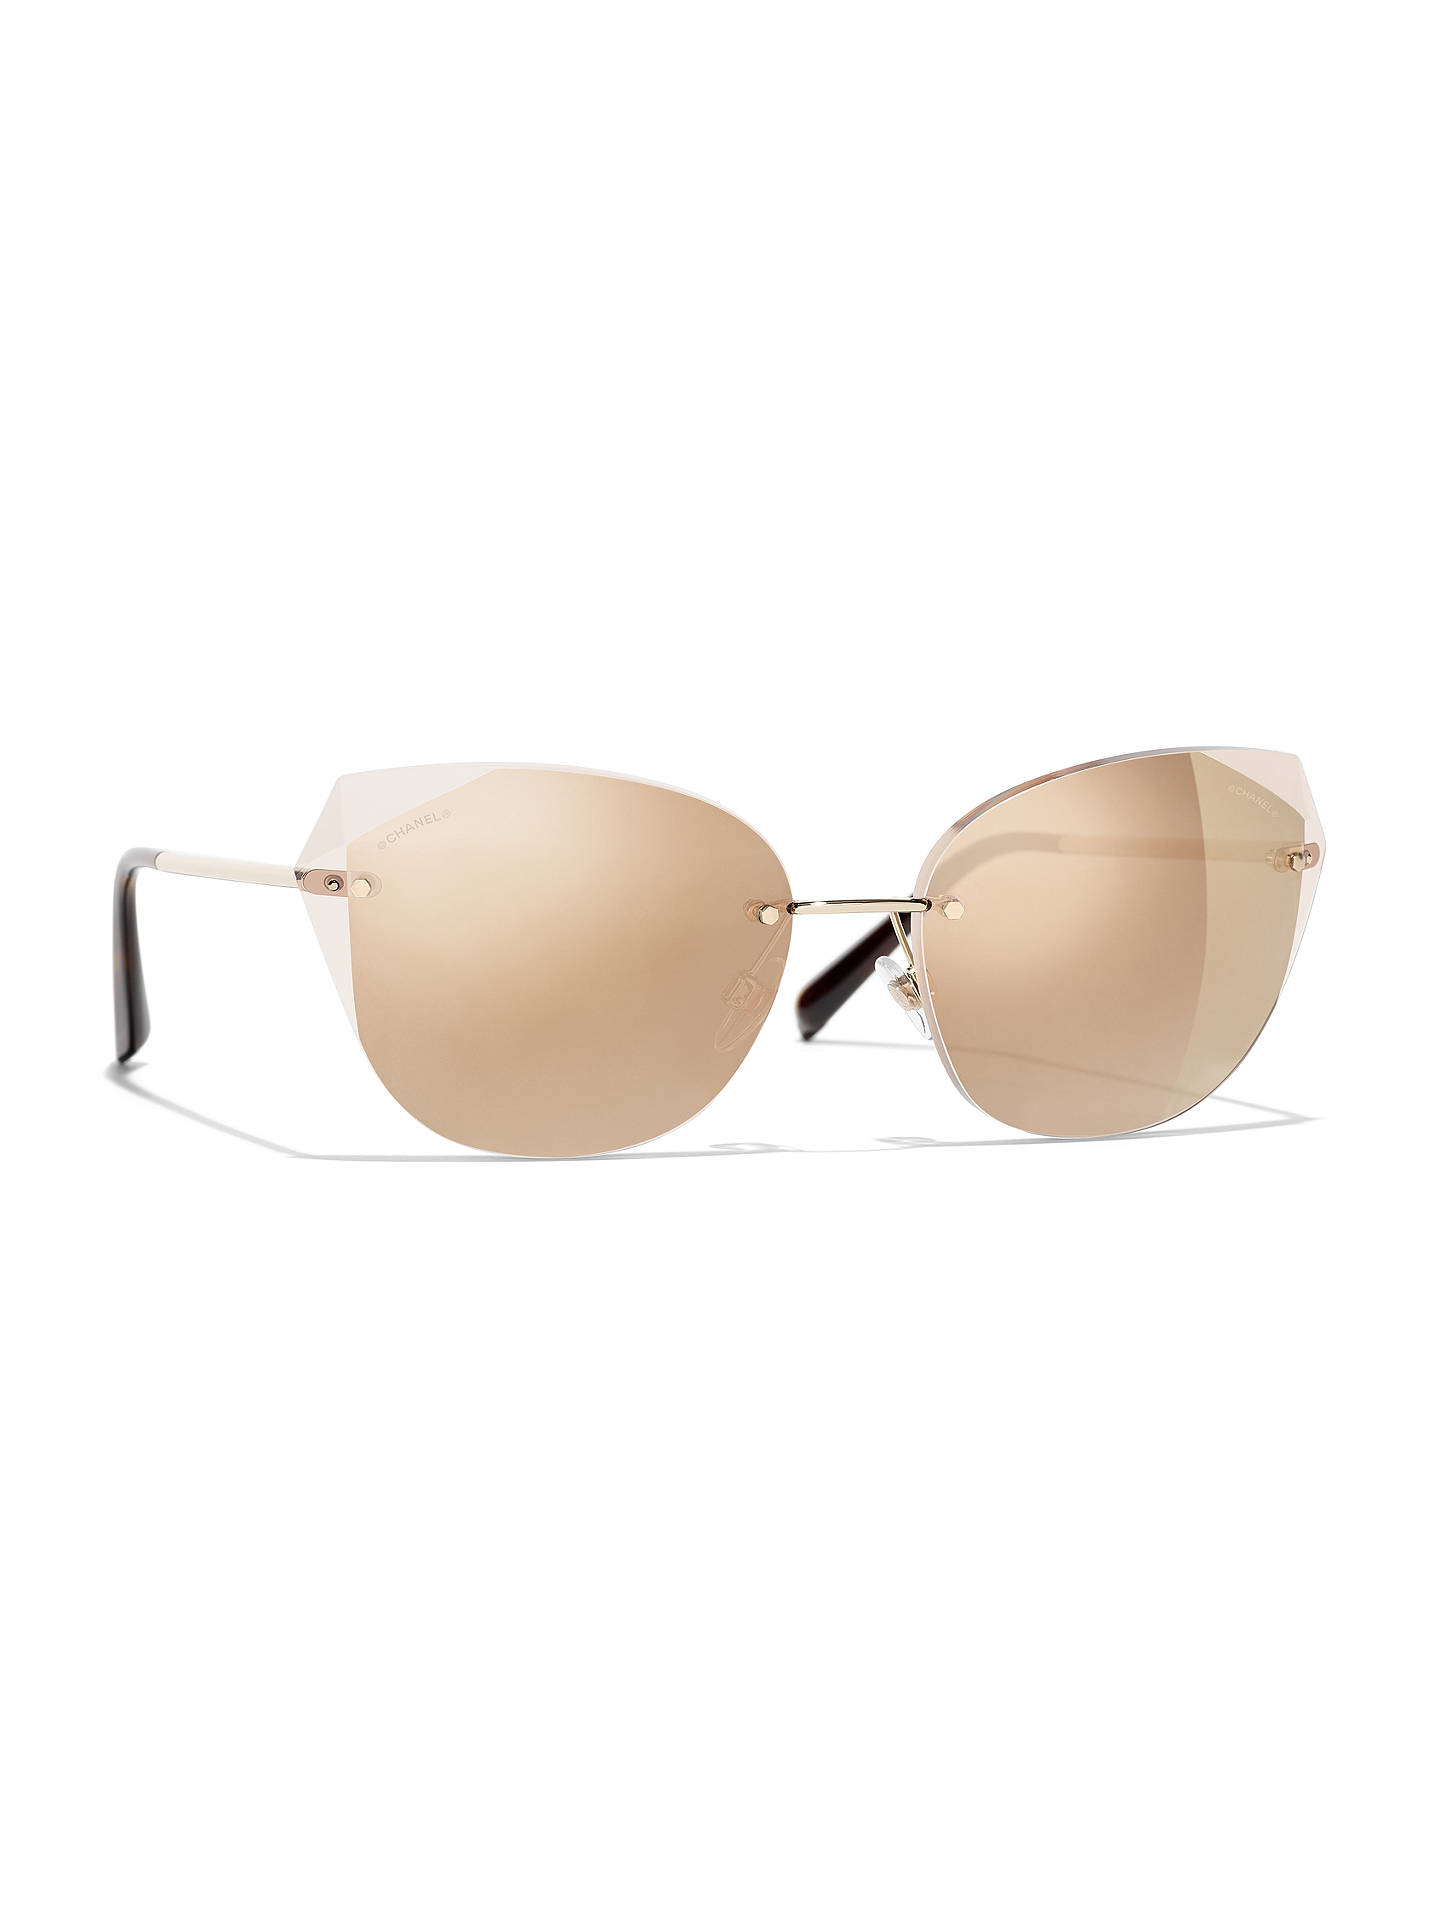 6882c24c48 BuyCHANEL Cat Eye Sunglasses CH4237 Gold Brown Gradient Online at  johnlewis.com ...